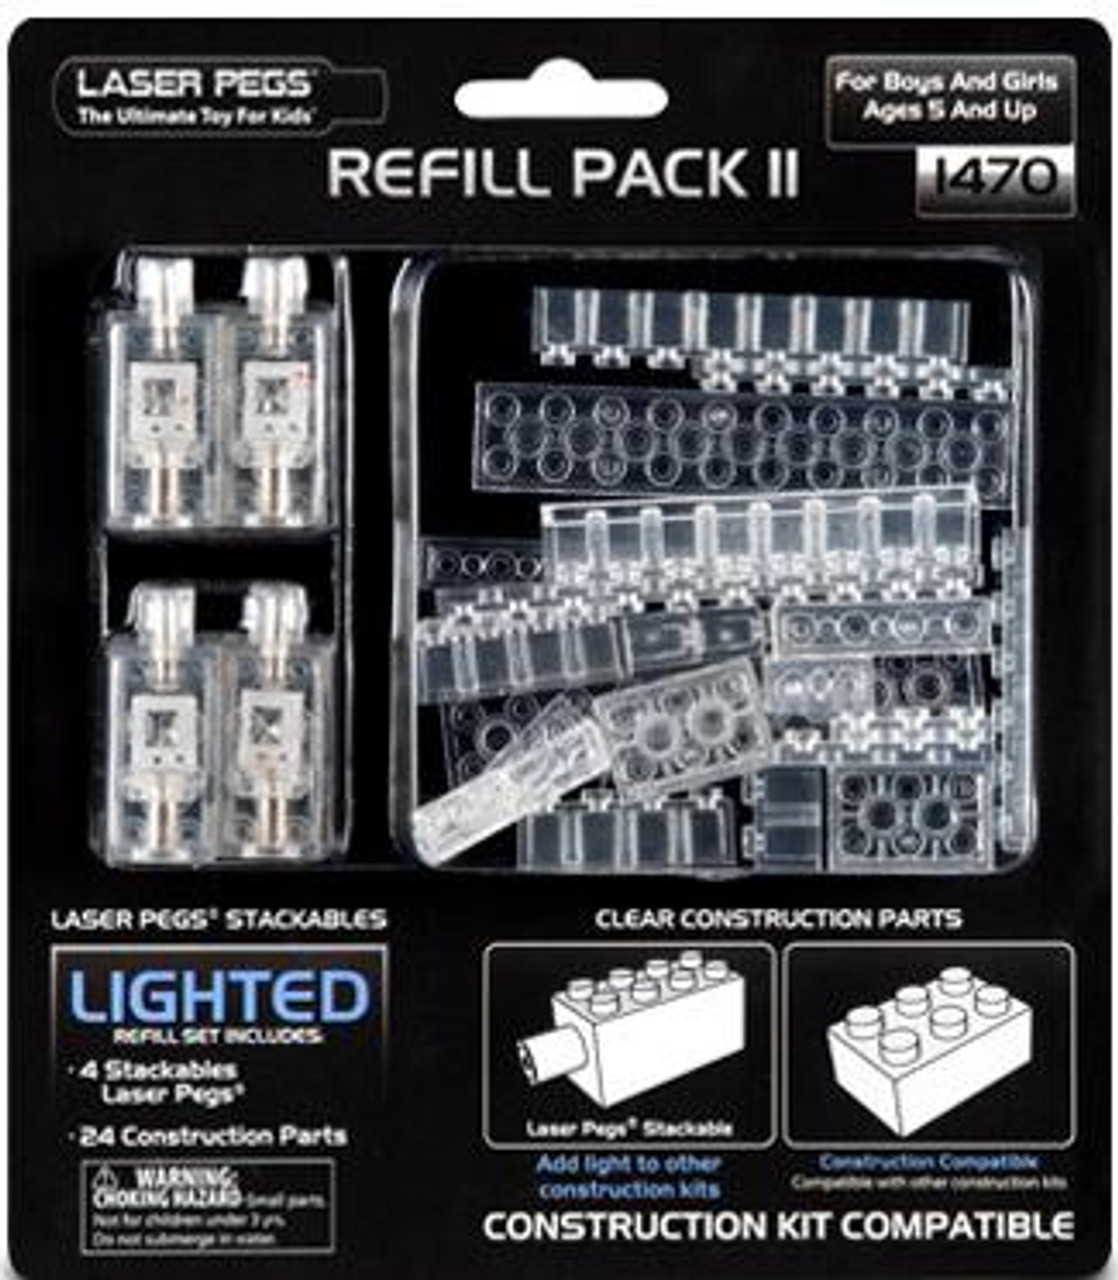 Laser Pegs Refill Pack 2 Building Set #1470